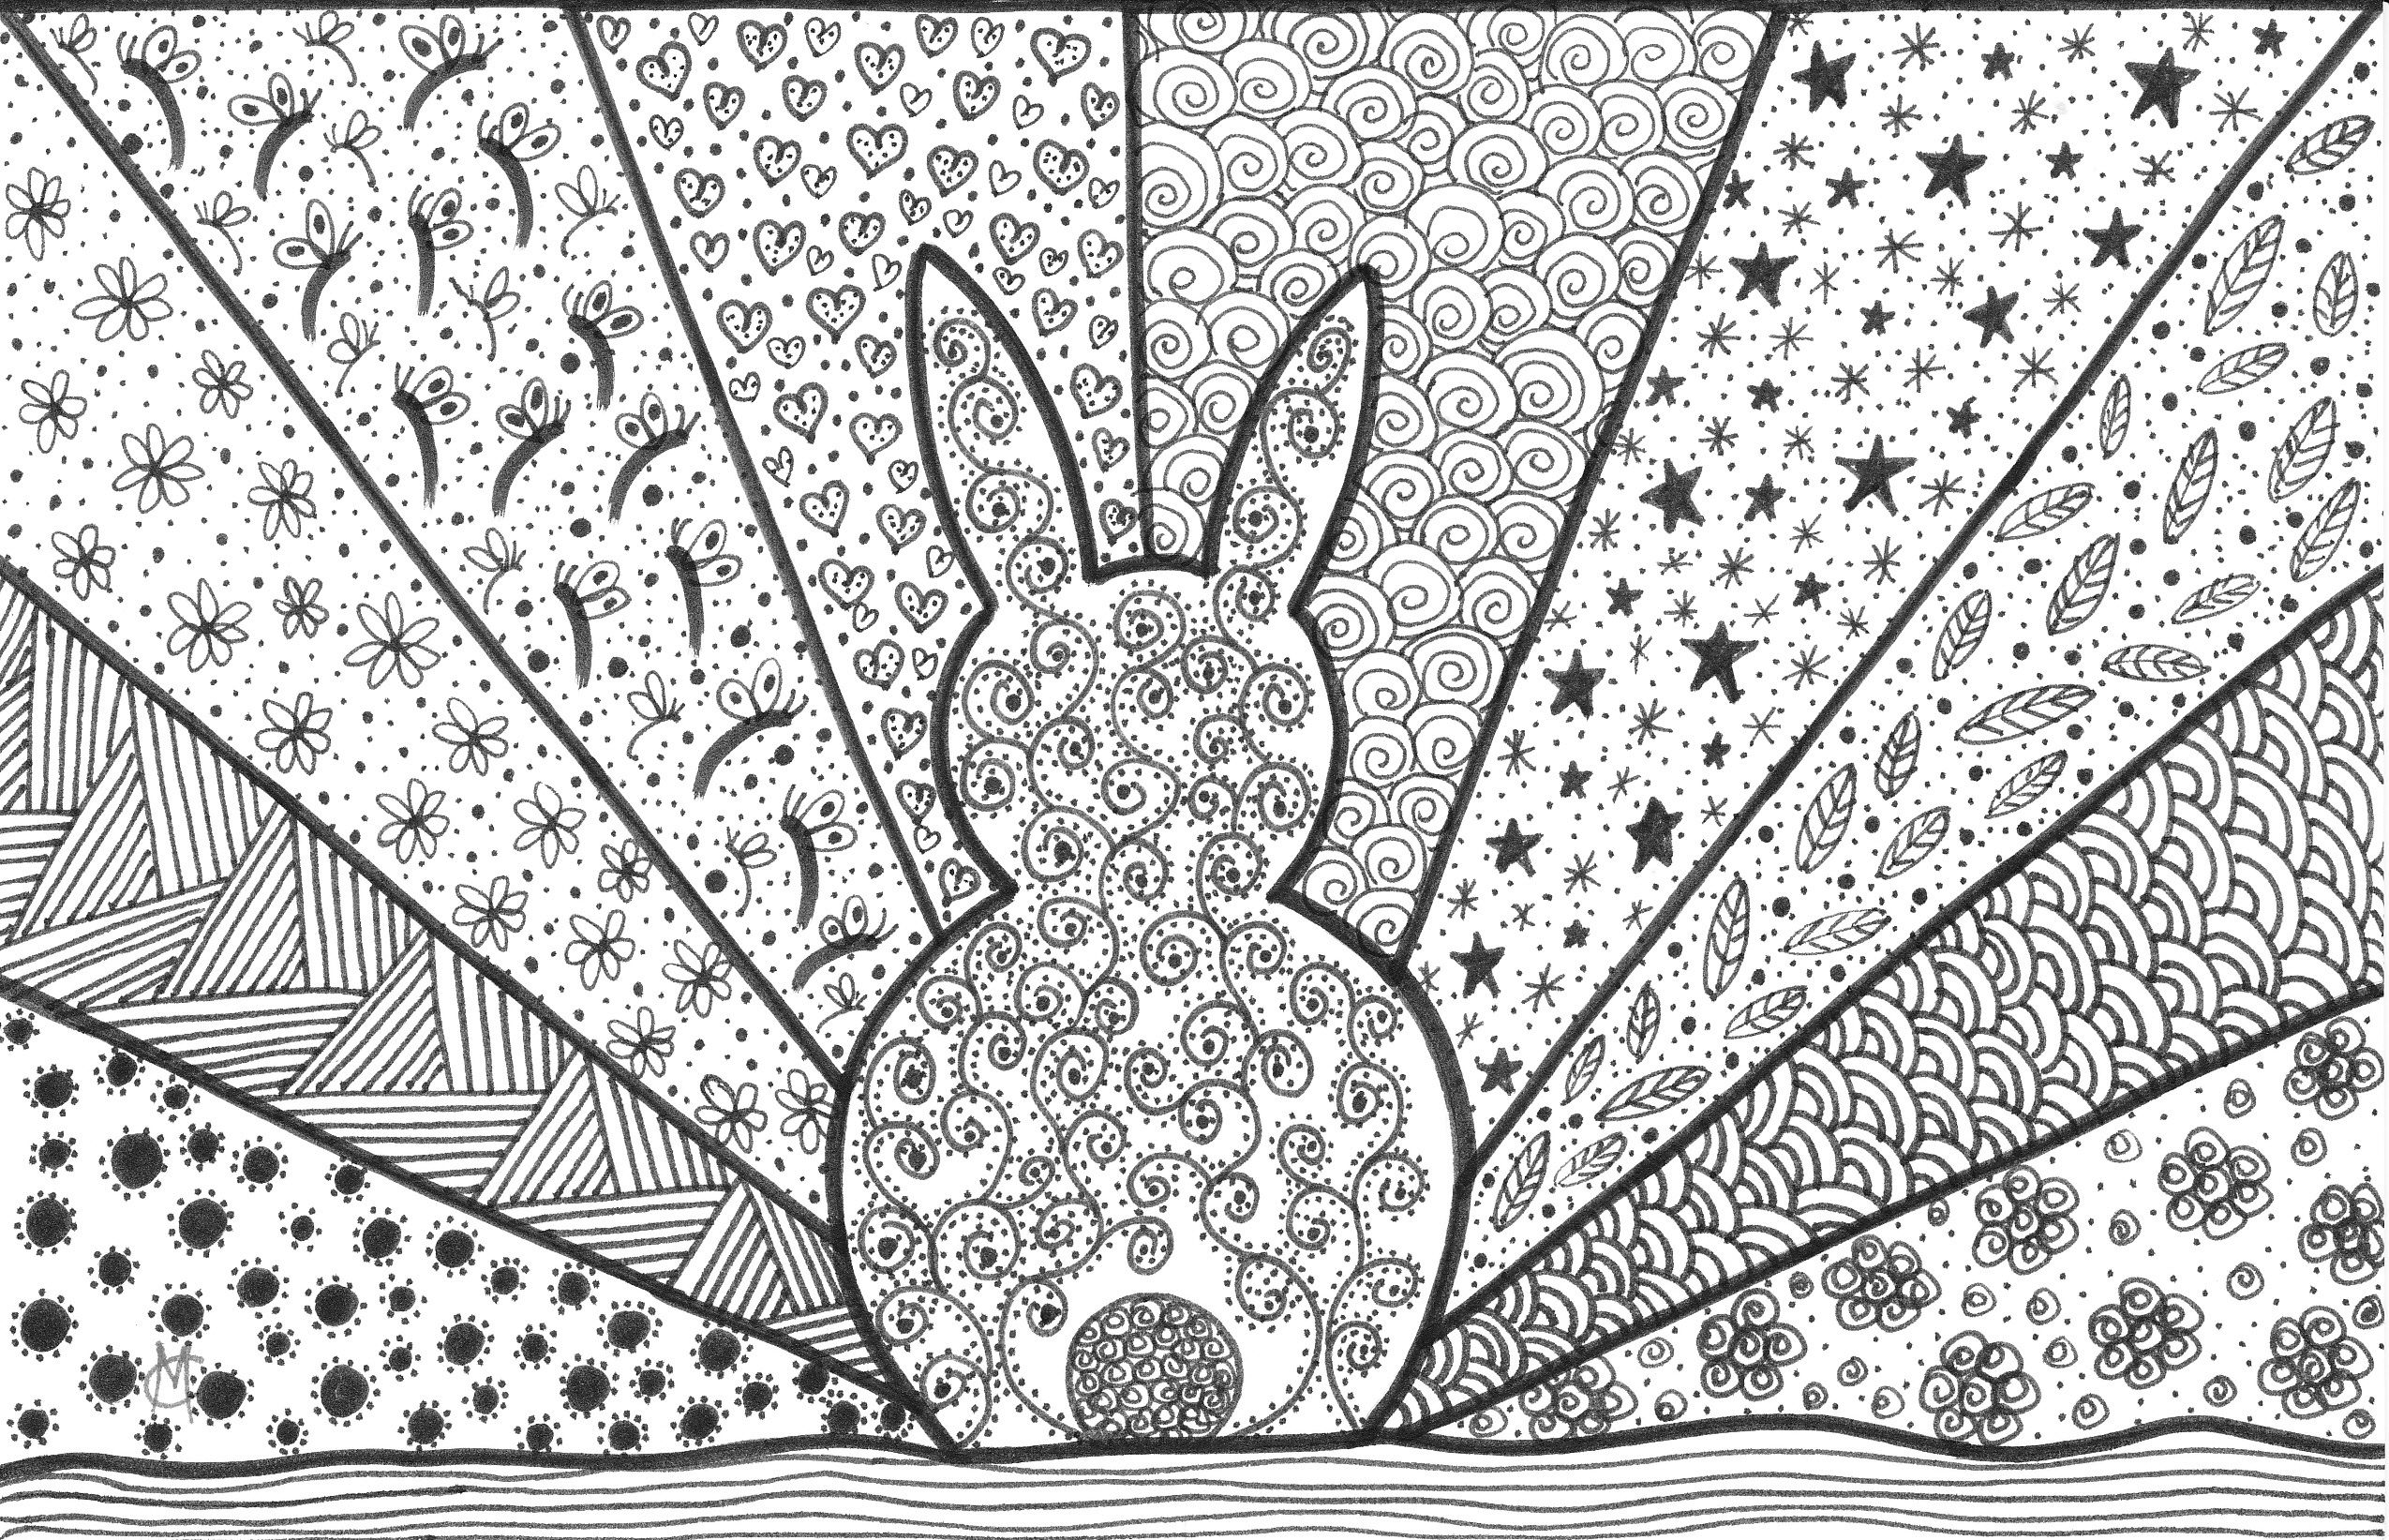 Bunny Doodle An Original Artwork By Cat Magness Geometric